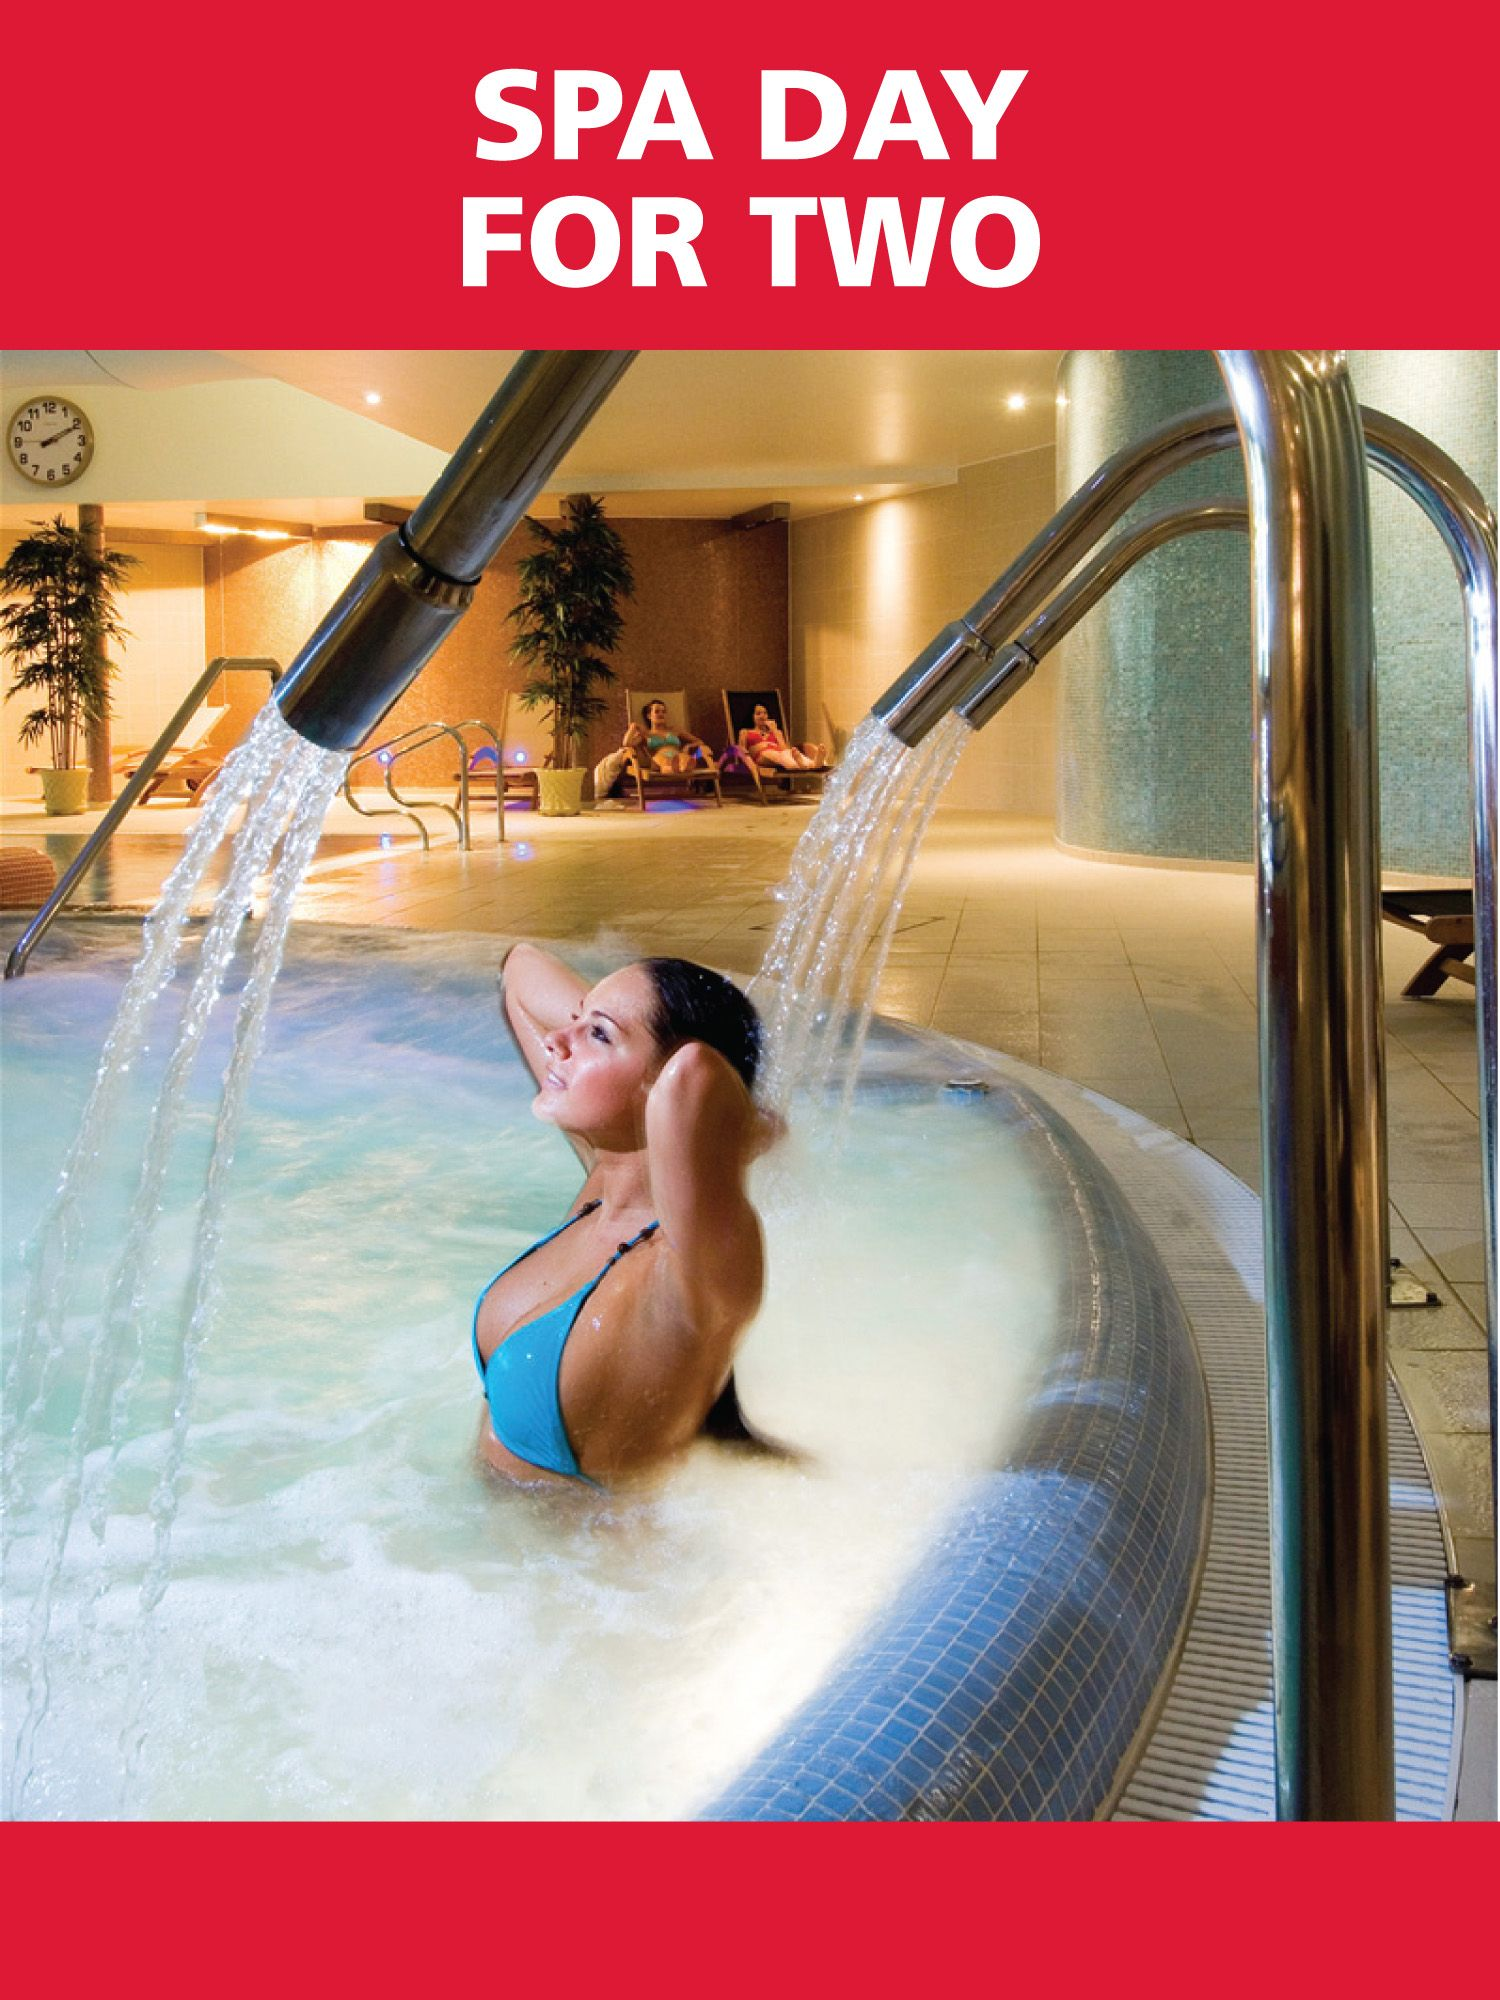 Cheap spa day deals uk